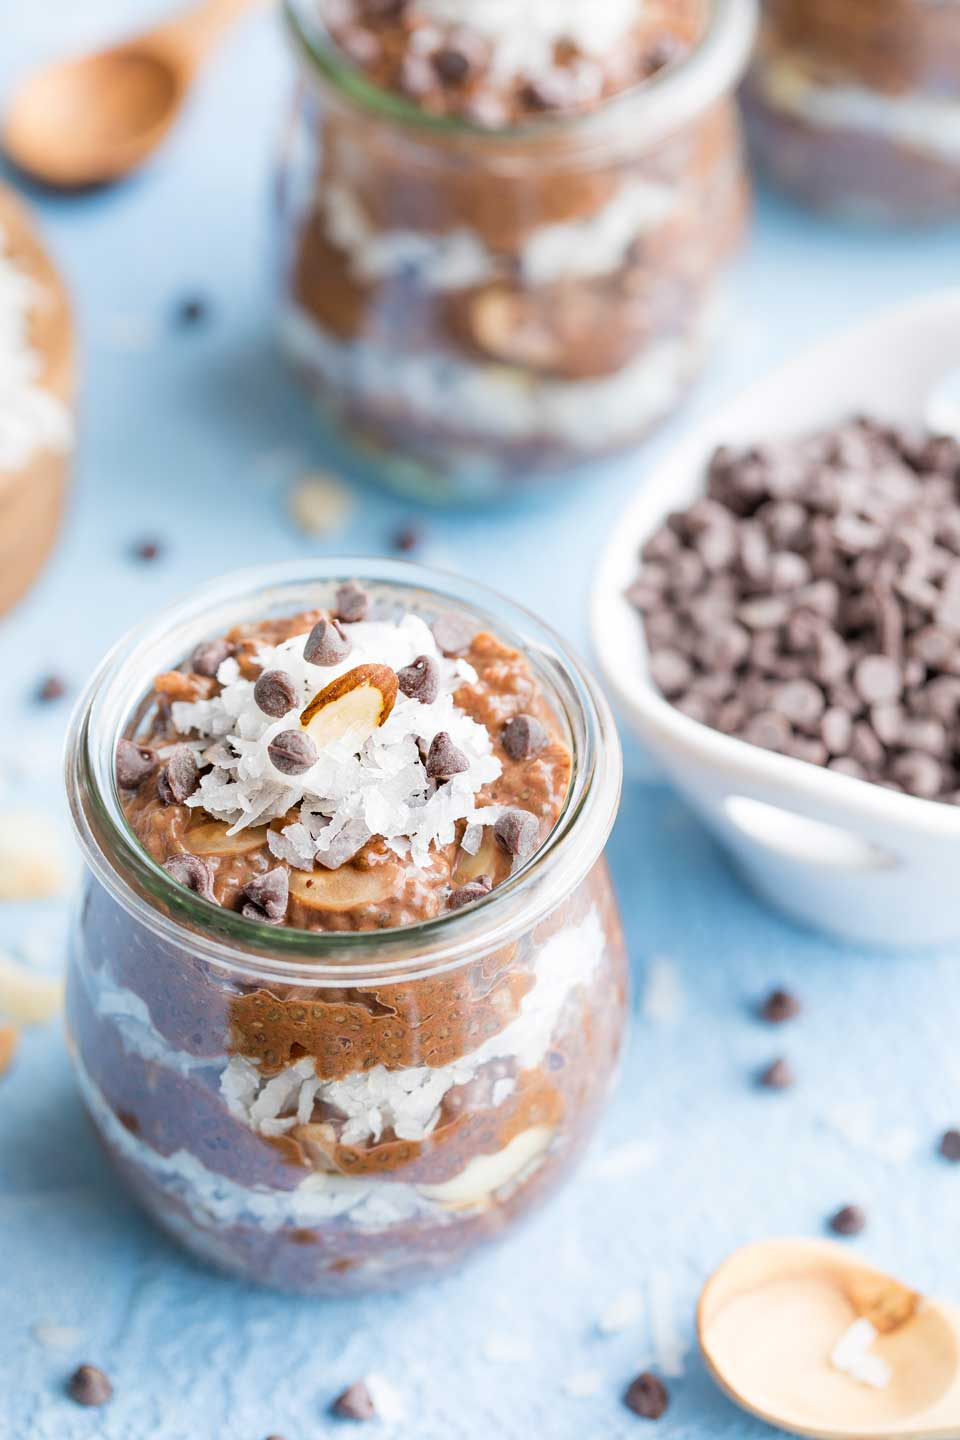 One jar of layered pudding in the foreground, with a bowl of chocolate chips and additional jars of chia pudding in the background.